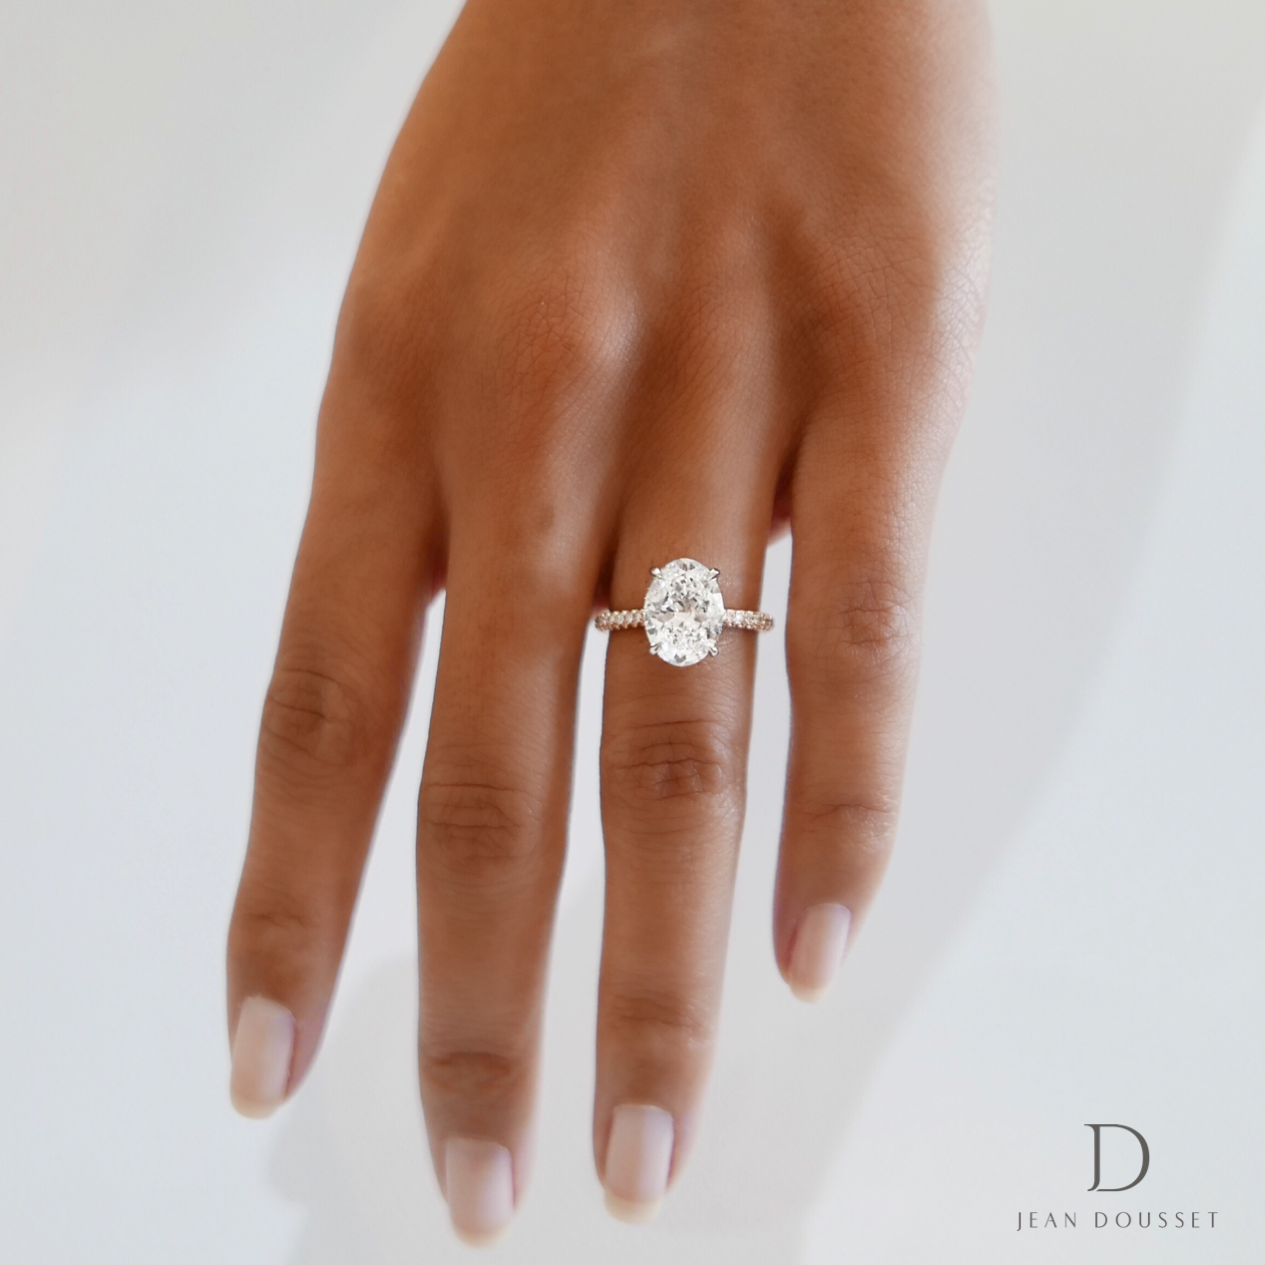 The Luna engagement ring with an oval cut diamond